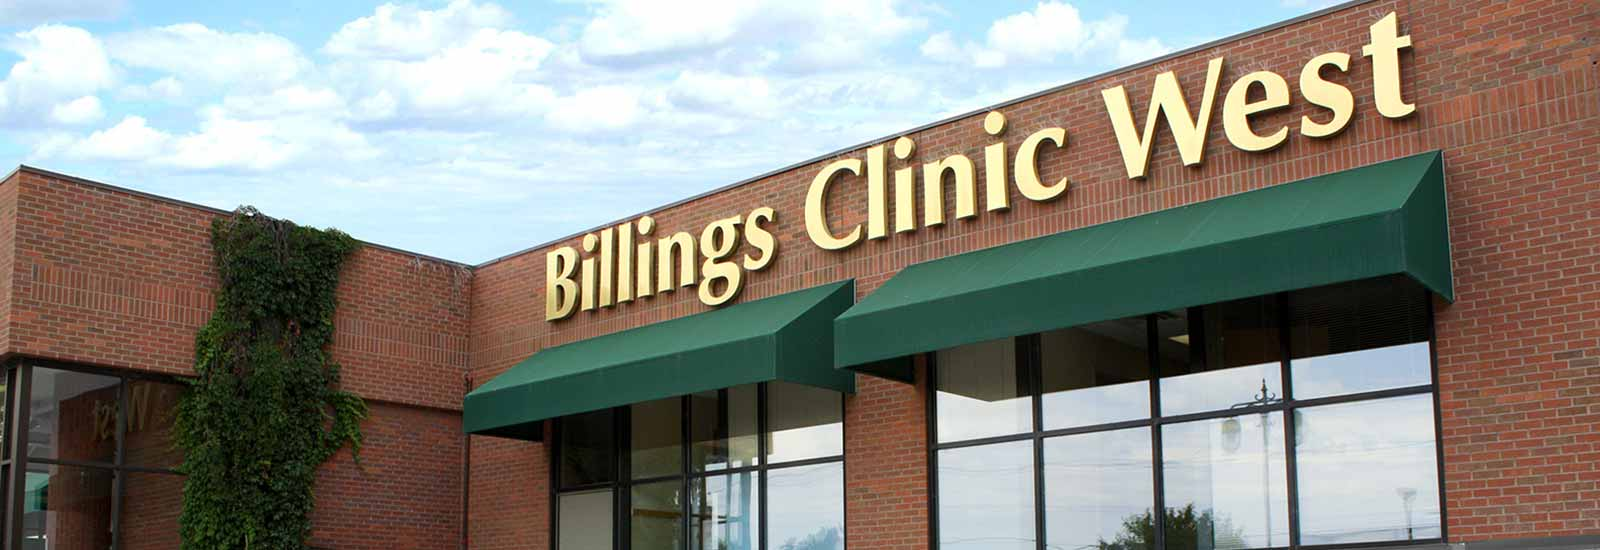 Billings Clinic West - SameDay Care, Pediatrics, Primary Care, Facial Plastic Surgery and Medical Spa, OB/GYN, Breast Health